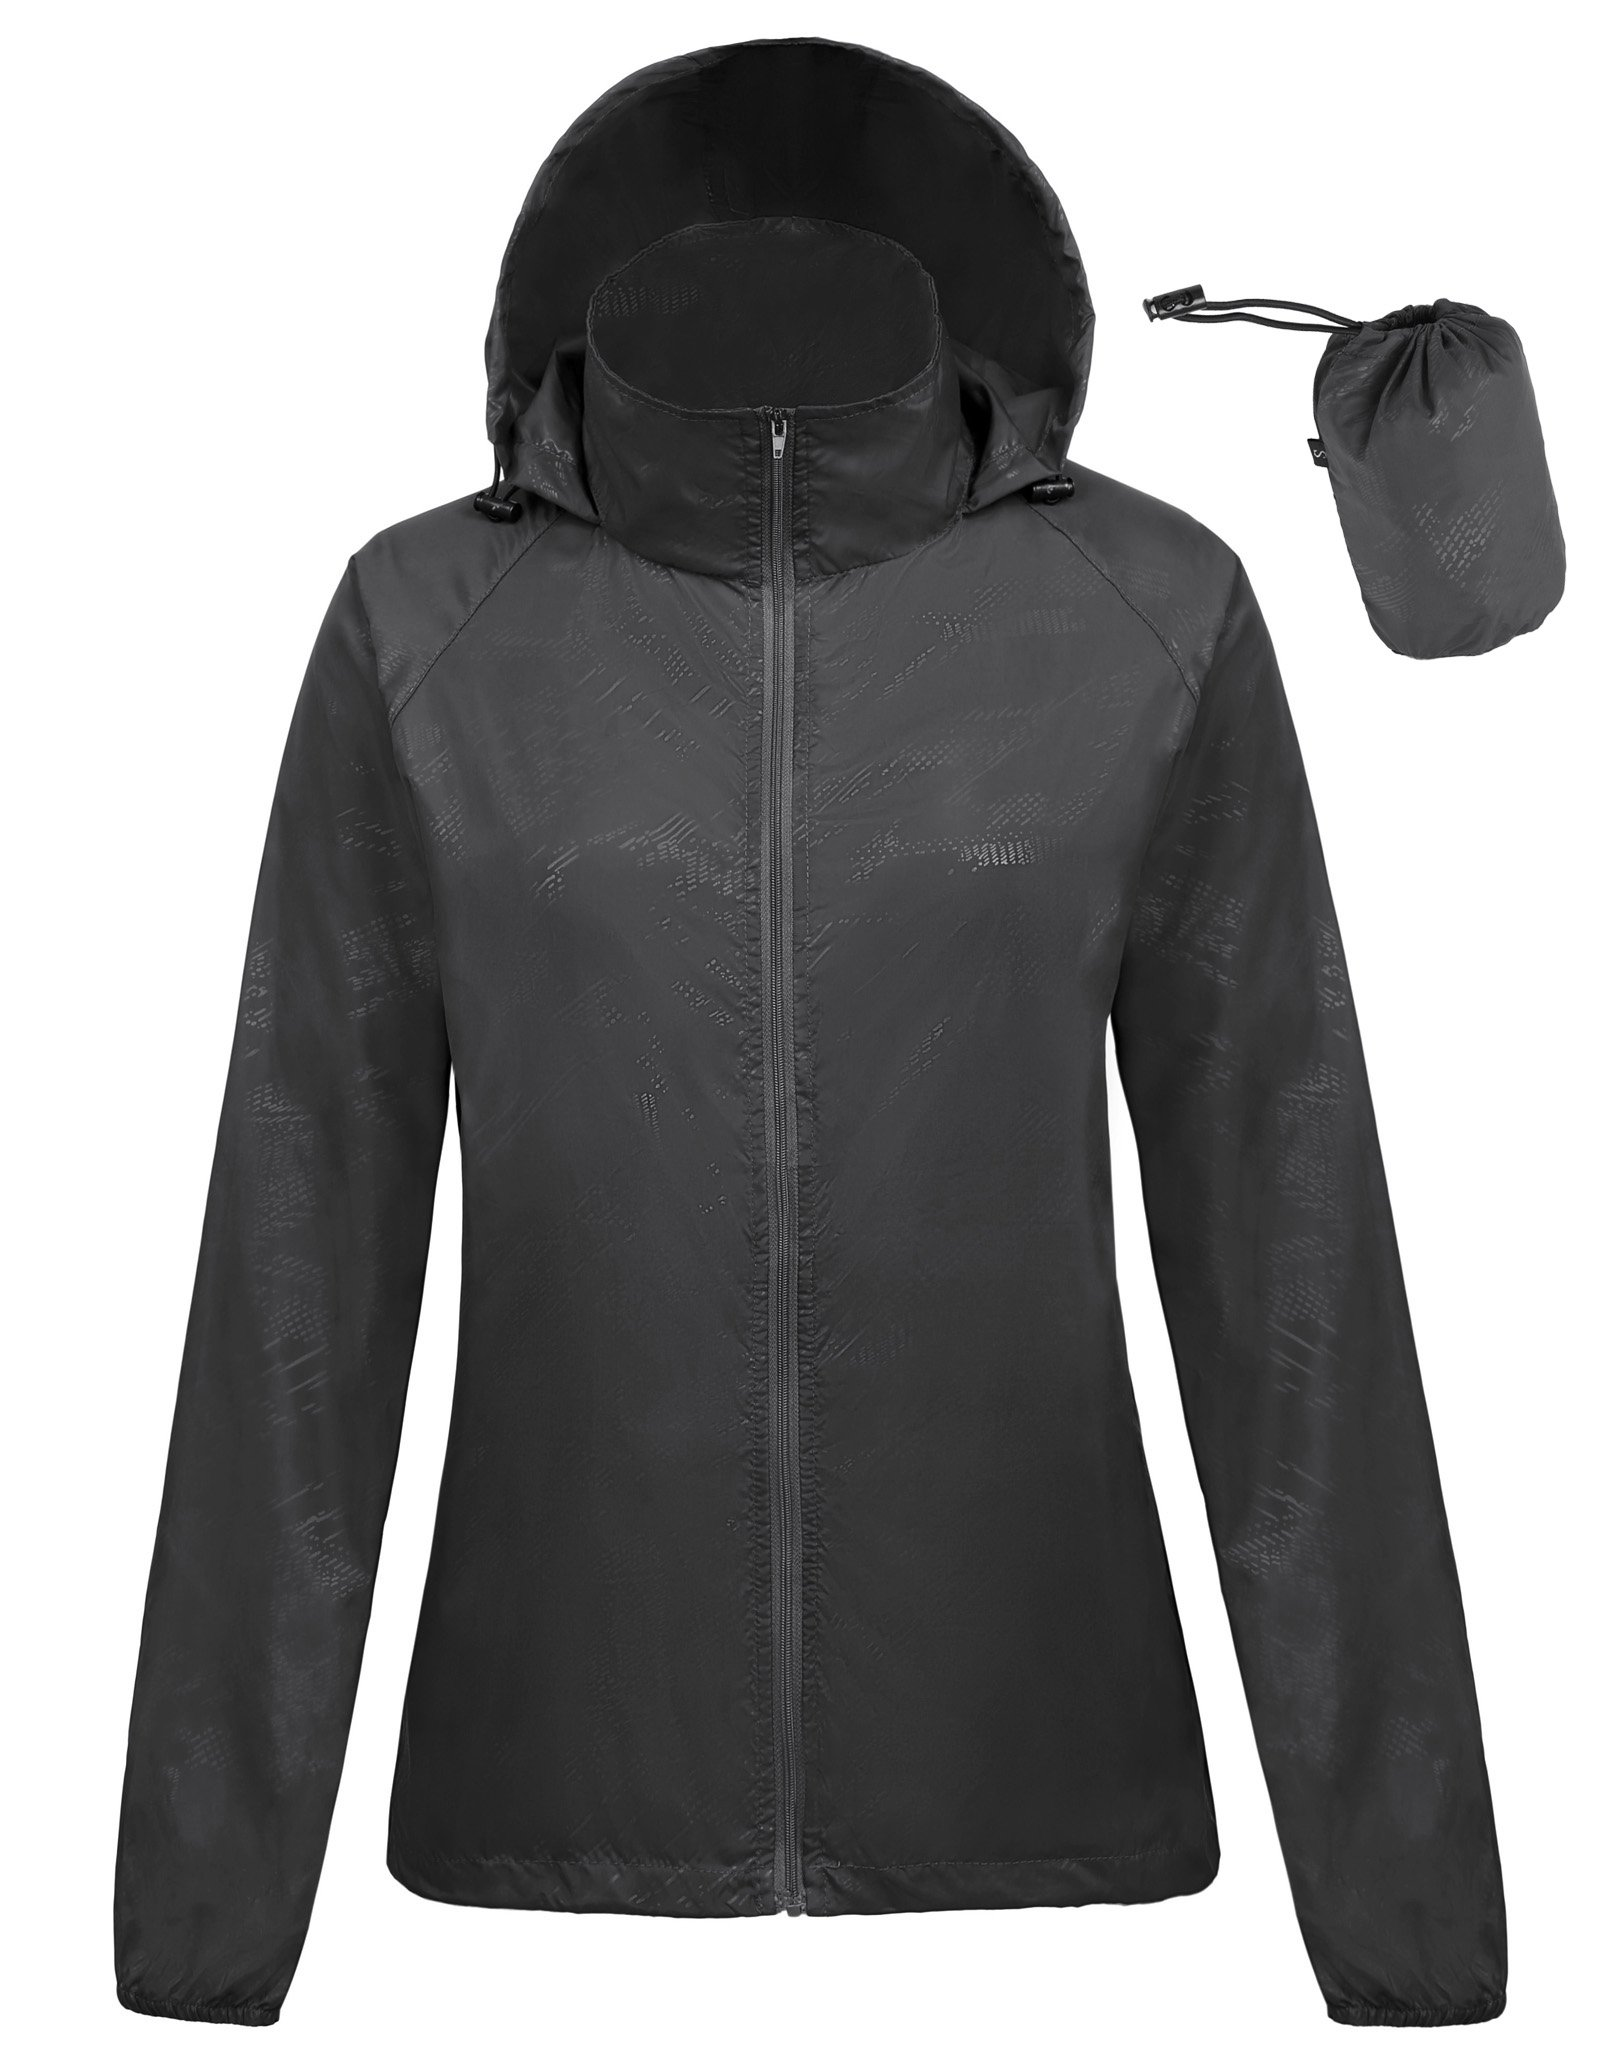 Kate Kasin Ladies Sport Anorak Black Running Jacket Lightweight Hoody (XL,Black1001)